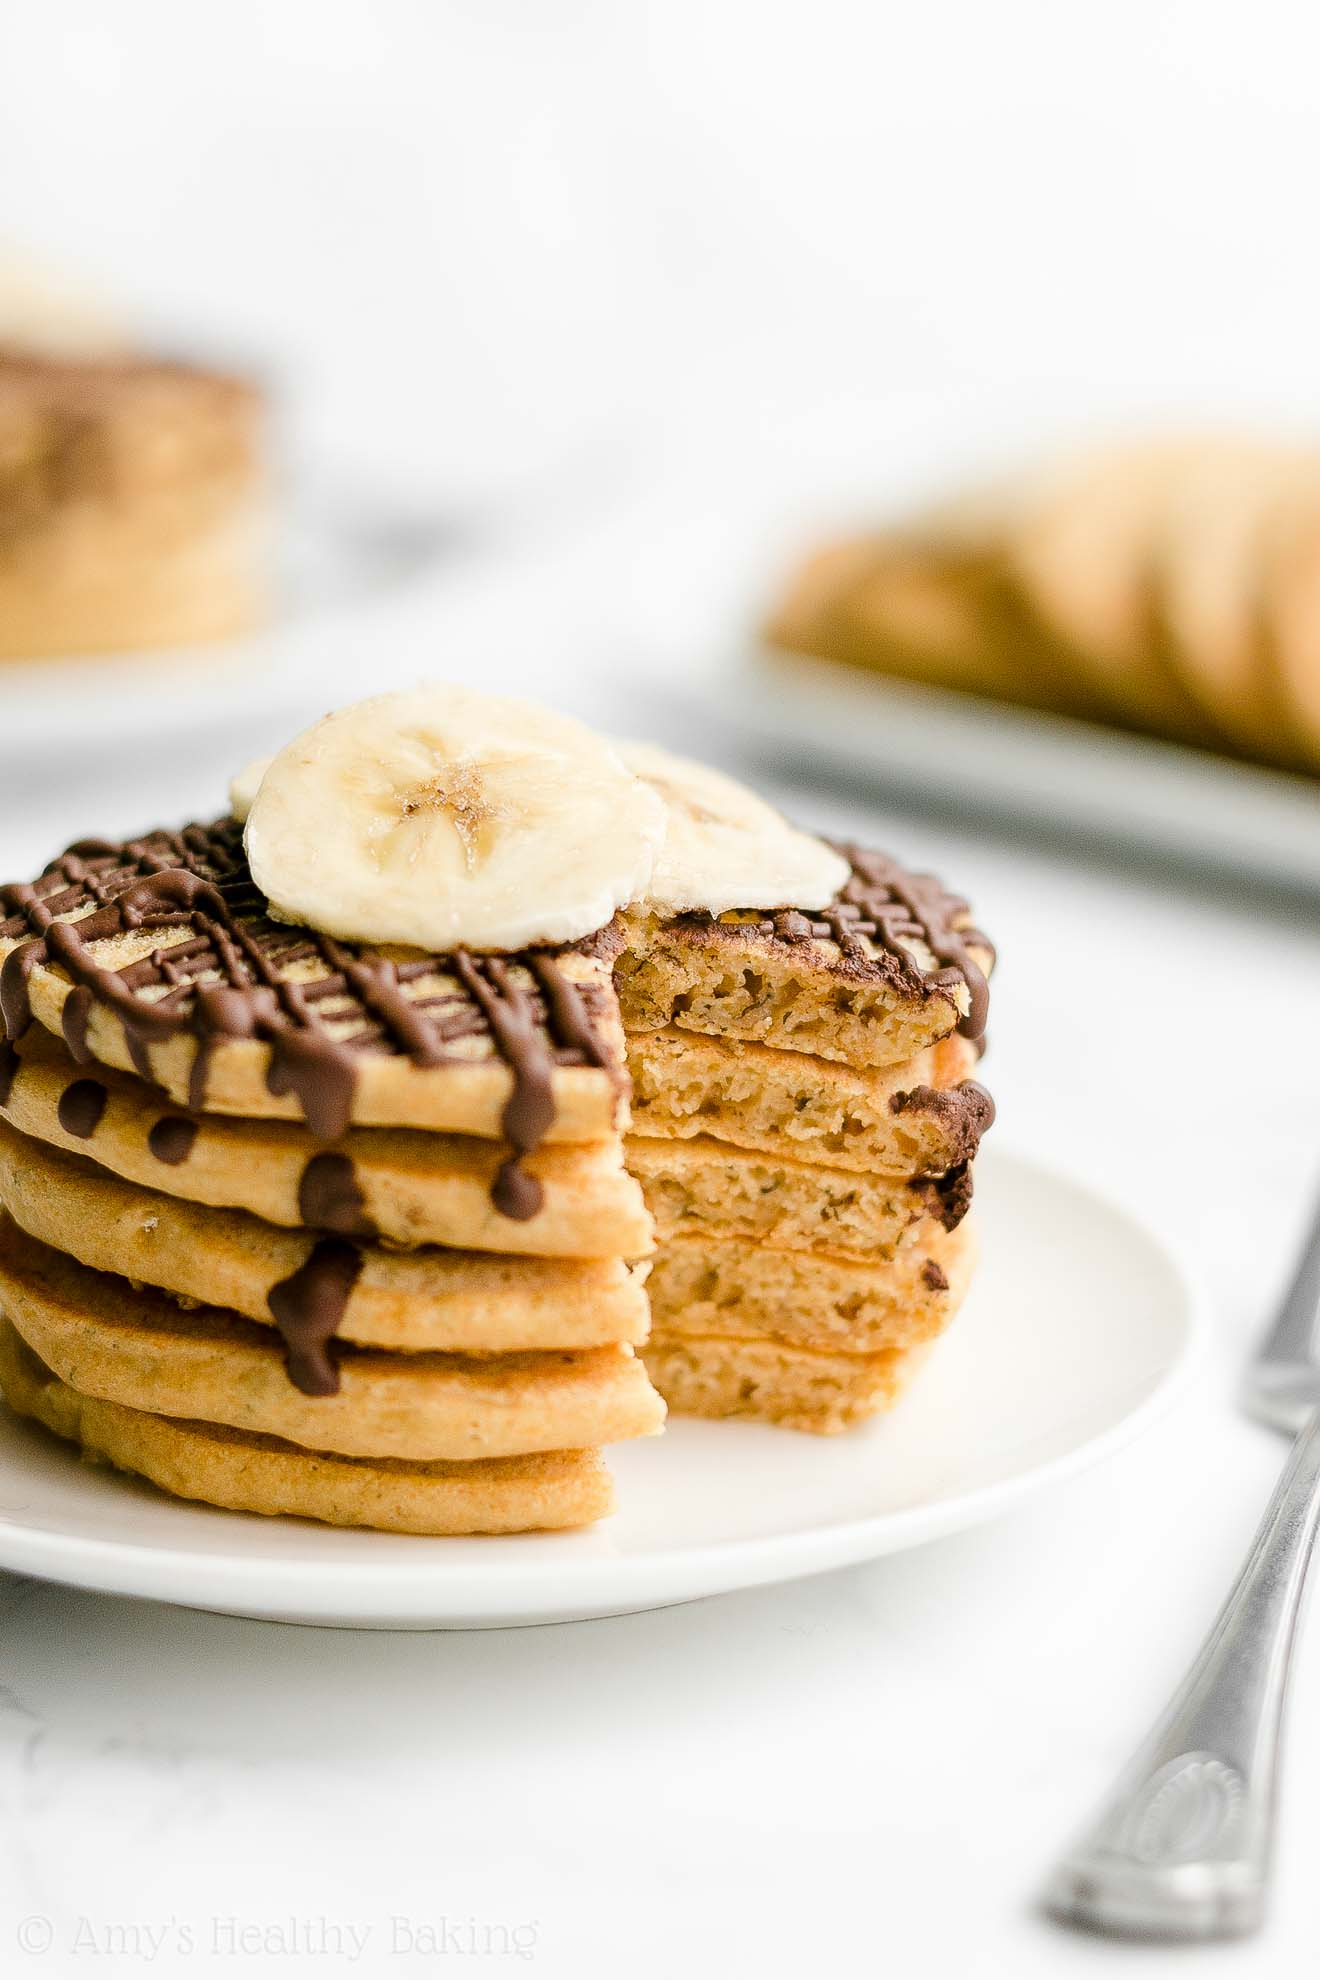 Best Easy Healthy Homemade Gluten Free Dairy Free Fluffy Banana Pancakes